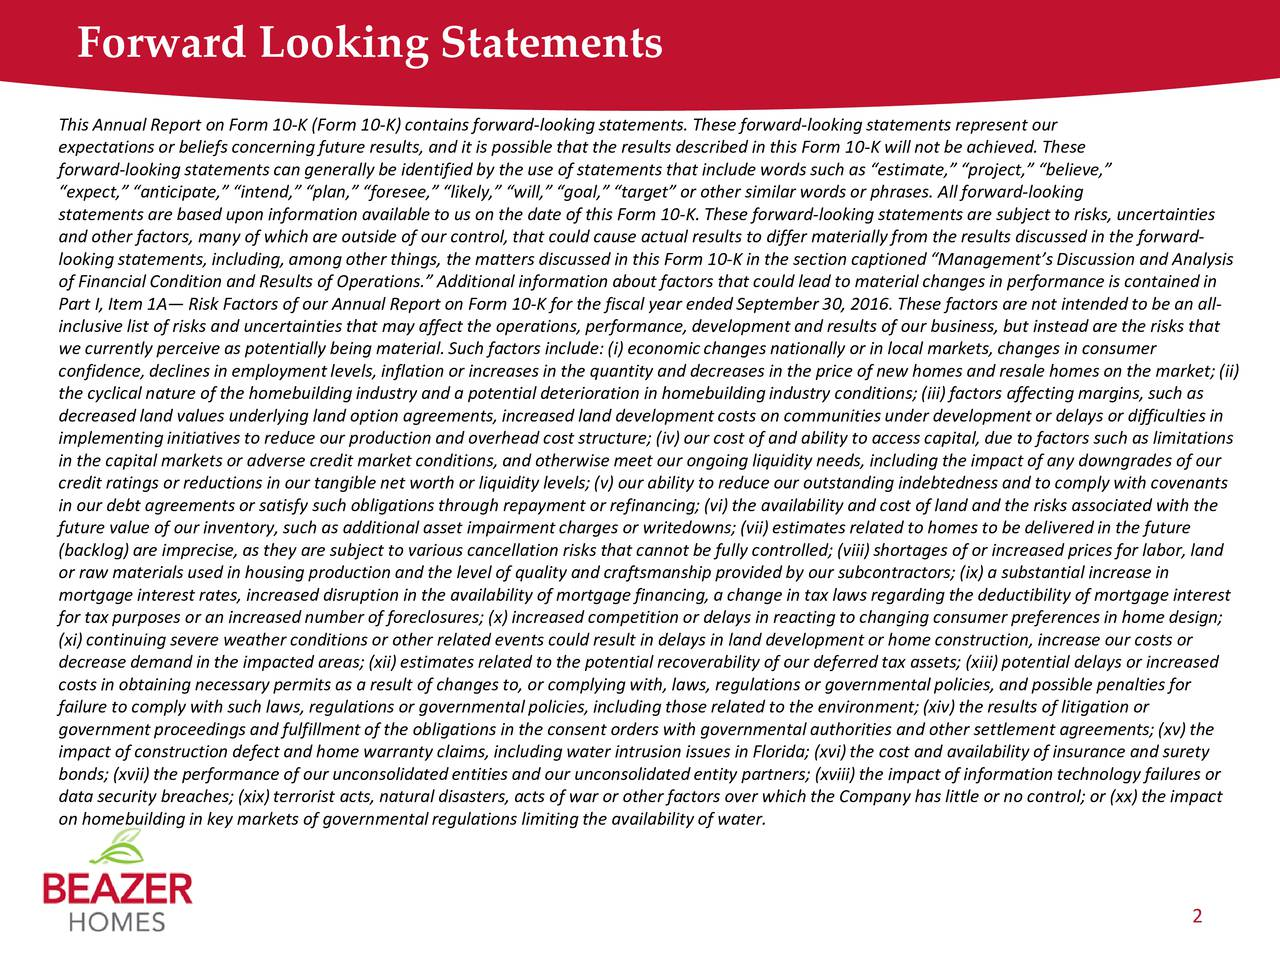 This Annual Report on Form 10-K (Form 10-K) contains forward-looking statements. These forward-looking statements represent our expectations or beliefs concerning future results, and it is possible that the results described in this Form 10-K will not be achieved. These forward-looking statements can generally be identified by the use of statements that include words such as estimate, project, believe, expect, anticipate, intend, plan, foresee, likely, will, goal, target or other similar words or phrasfrward-looking statements are based upon information available to us on the date of this Form 10-K. These forward-looking statements are subject to risks, uncertainties and other factors, many of which are outside of our control, thatcould causeactual results to differ materially from the results discussed in the forward- looking statements, including, among other things,the matters discussed in this Form10-K in the section captioned Managements Discussionand Analysis of Financial Condition andResults of Operations. Additional information about factors that could lead to material changes in performance is contained in Part I, Item 1A Risk Factors of our Annual Report on Form 10-K for the fiscal year ended September 30,2016. These factors are not intended to be anall- inclusive listof risks and uncertainties that may affect the operations, performance, development and results of our business, butinstead are the risks that we currently perceive as potentially being material. Such factors include: (i) economicchanges nationally or in local markets, changes in consumer confidence, declines in employment levels, inflationor increases in the quantity and decreases in the price of new homes and resale homes on the marke; (ii) the cyclical nature of the homebuilding industry and a potential deterioration in homebuilding industry conditions; (iii) factorsaffecting margins, such as decreased land values underlying land option agreements, increased land development costson communitiesunder developmentor delays or difficulties in implementing initiatives to reduce our production and overheadcost structure; (iv) ourcost of and ability to access capital, due to factors such as limitations in the capital markets or adverse credit marketconditions, andotherwise meet our ongoing liquidity needs, including the impact of any downgrades of our credit ratings or reductions in our tangiblenet worth or liquiditylevels; (v) ourability to reduce our outstanding indebtedness and to comply with covenants in our debt agreements or satisfy such obligations throughrepayment or refinancing; (vi) theavailability and cost of land and the risks associated with the future value of our inventory, such as additional assetimpairment chargesor writedowns; (vii) estimatesrelated to homes to be delivered in the future (backlog)are imprecise, as they are subject to various cancellationrisks that cannot be fully controlled; (viii) shortagesof or increased prices for labor, land or raw materials used in housing production and the level of quality and craftsmanship provided by oursubcontractors; (ix) asubstantial increase in mortgage interest rates, increased disruption in the availability of mortgage financing, a change in tax laws regarding the deductibility of mortgage interest for tax purposes or an increased number of foreclosures; (x) increasedcompetition or delays in reacting to changing consumer preferences in homedesign; (xi) continuingsevere weather conditions or other related events could result in delays in land development or homeconstruction, increaseour costs or decrease demand in the impactedareas; (xii) estimatesrelated to the potential recoverability of our deferred taxassets; (xiii) potentialdelays or increased costs in obtaining necessary permits as a result of changes to, or complying with, laws, regulations orgovernmental policies, and possible penalties for failure to comply with such laws, regulations or governmentalpolicies, including those related to the environment; (xiv) the results of litigation or government proceedings and fulfillment of the obligations in the consent orders with governmental authorities and other settlementagreements; (xv) the impact of construction defect and home warranty claims, including water intrusion issues inFlorida; (xvi) thecost and availability of insurance and surety bonds; (xvii) theperformance of our unconsolidated entities and our unconsolidated entitypartners; (xviii) theimpact of information technology failures or data securitybreaches; (xix) terroristacts, natural disasters, acts of war or other factors over which the Company has little or no control;or (xx) theimpact on homebuilding in key markets of governmental regulations limiting the availability of water. 2